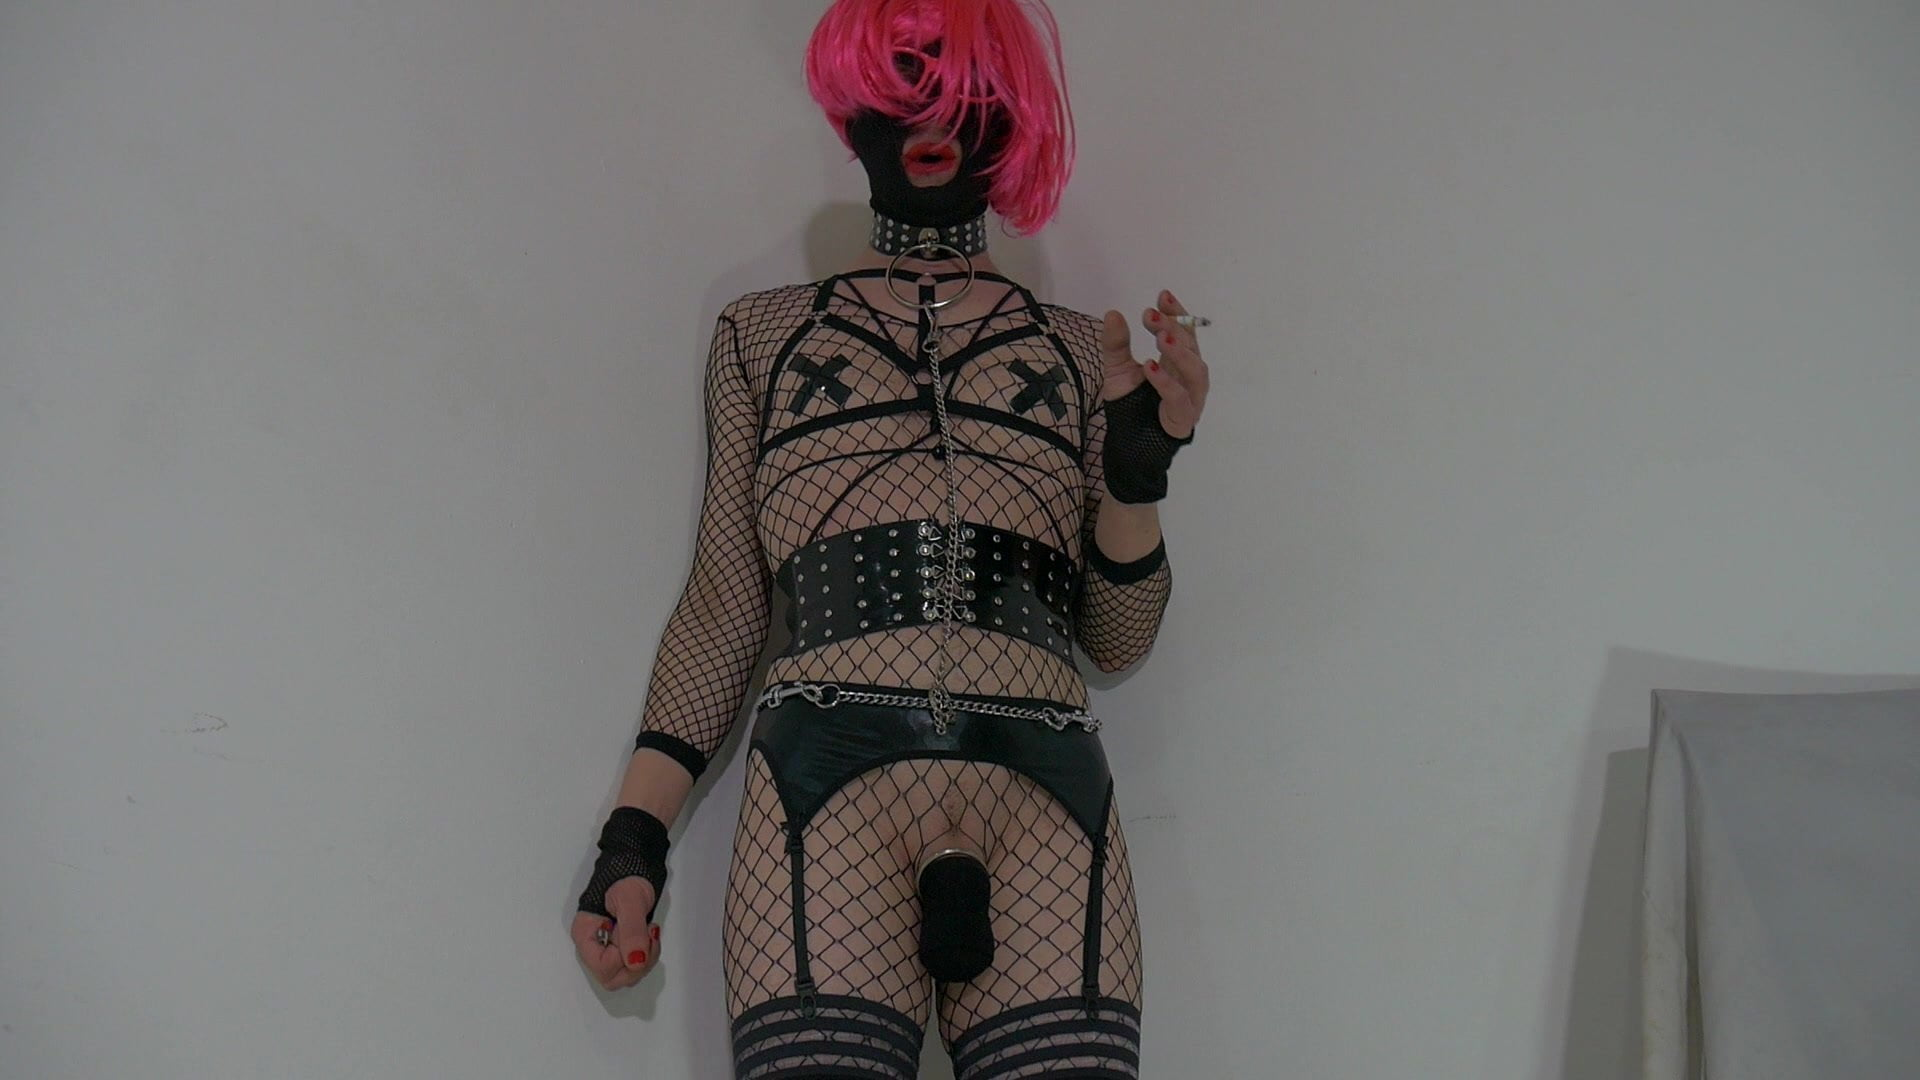 Attractive crossdresser partying at dwelling in slutty outfit